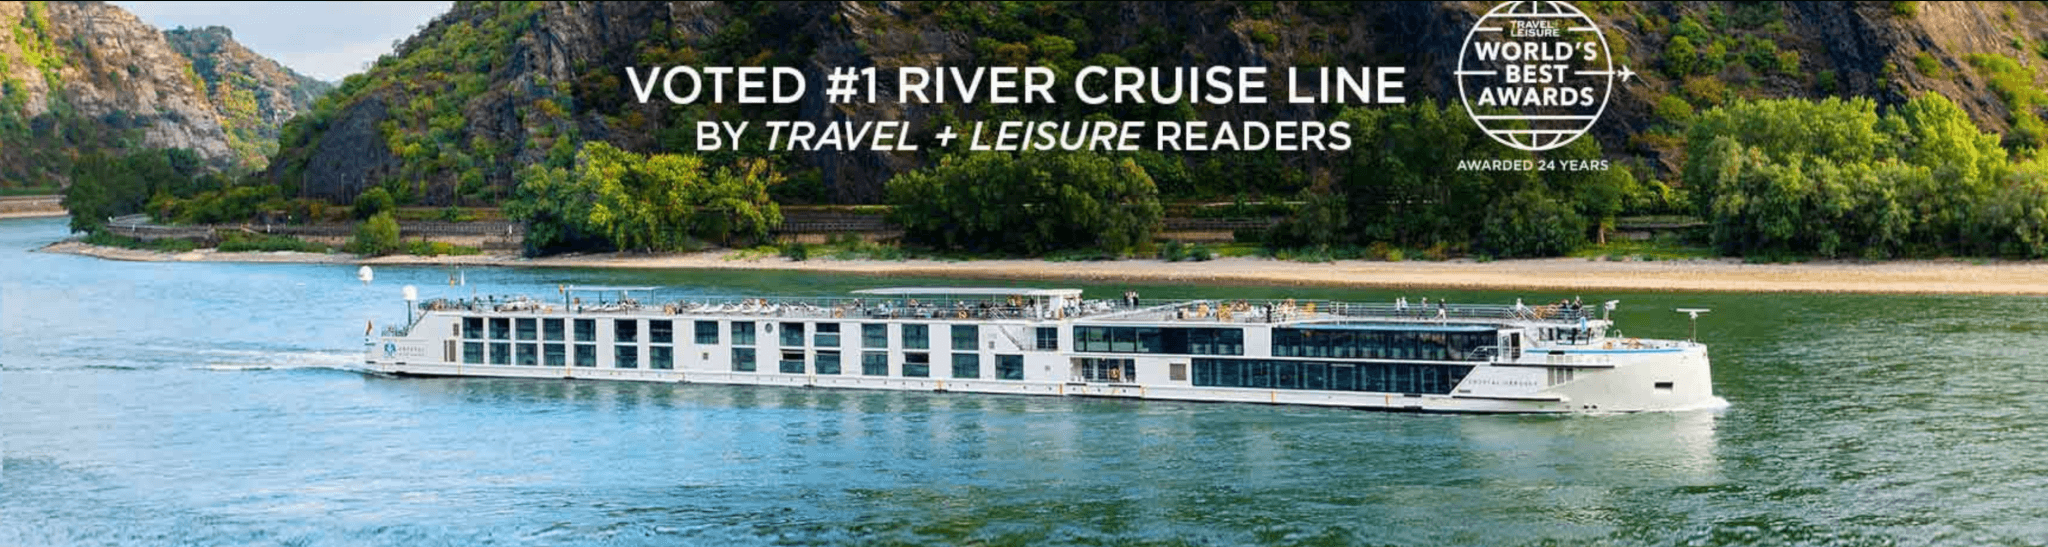 Crystal River Cruise Line - Voted#1